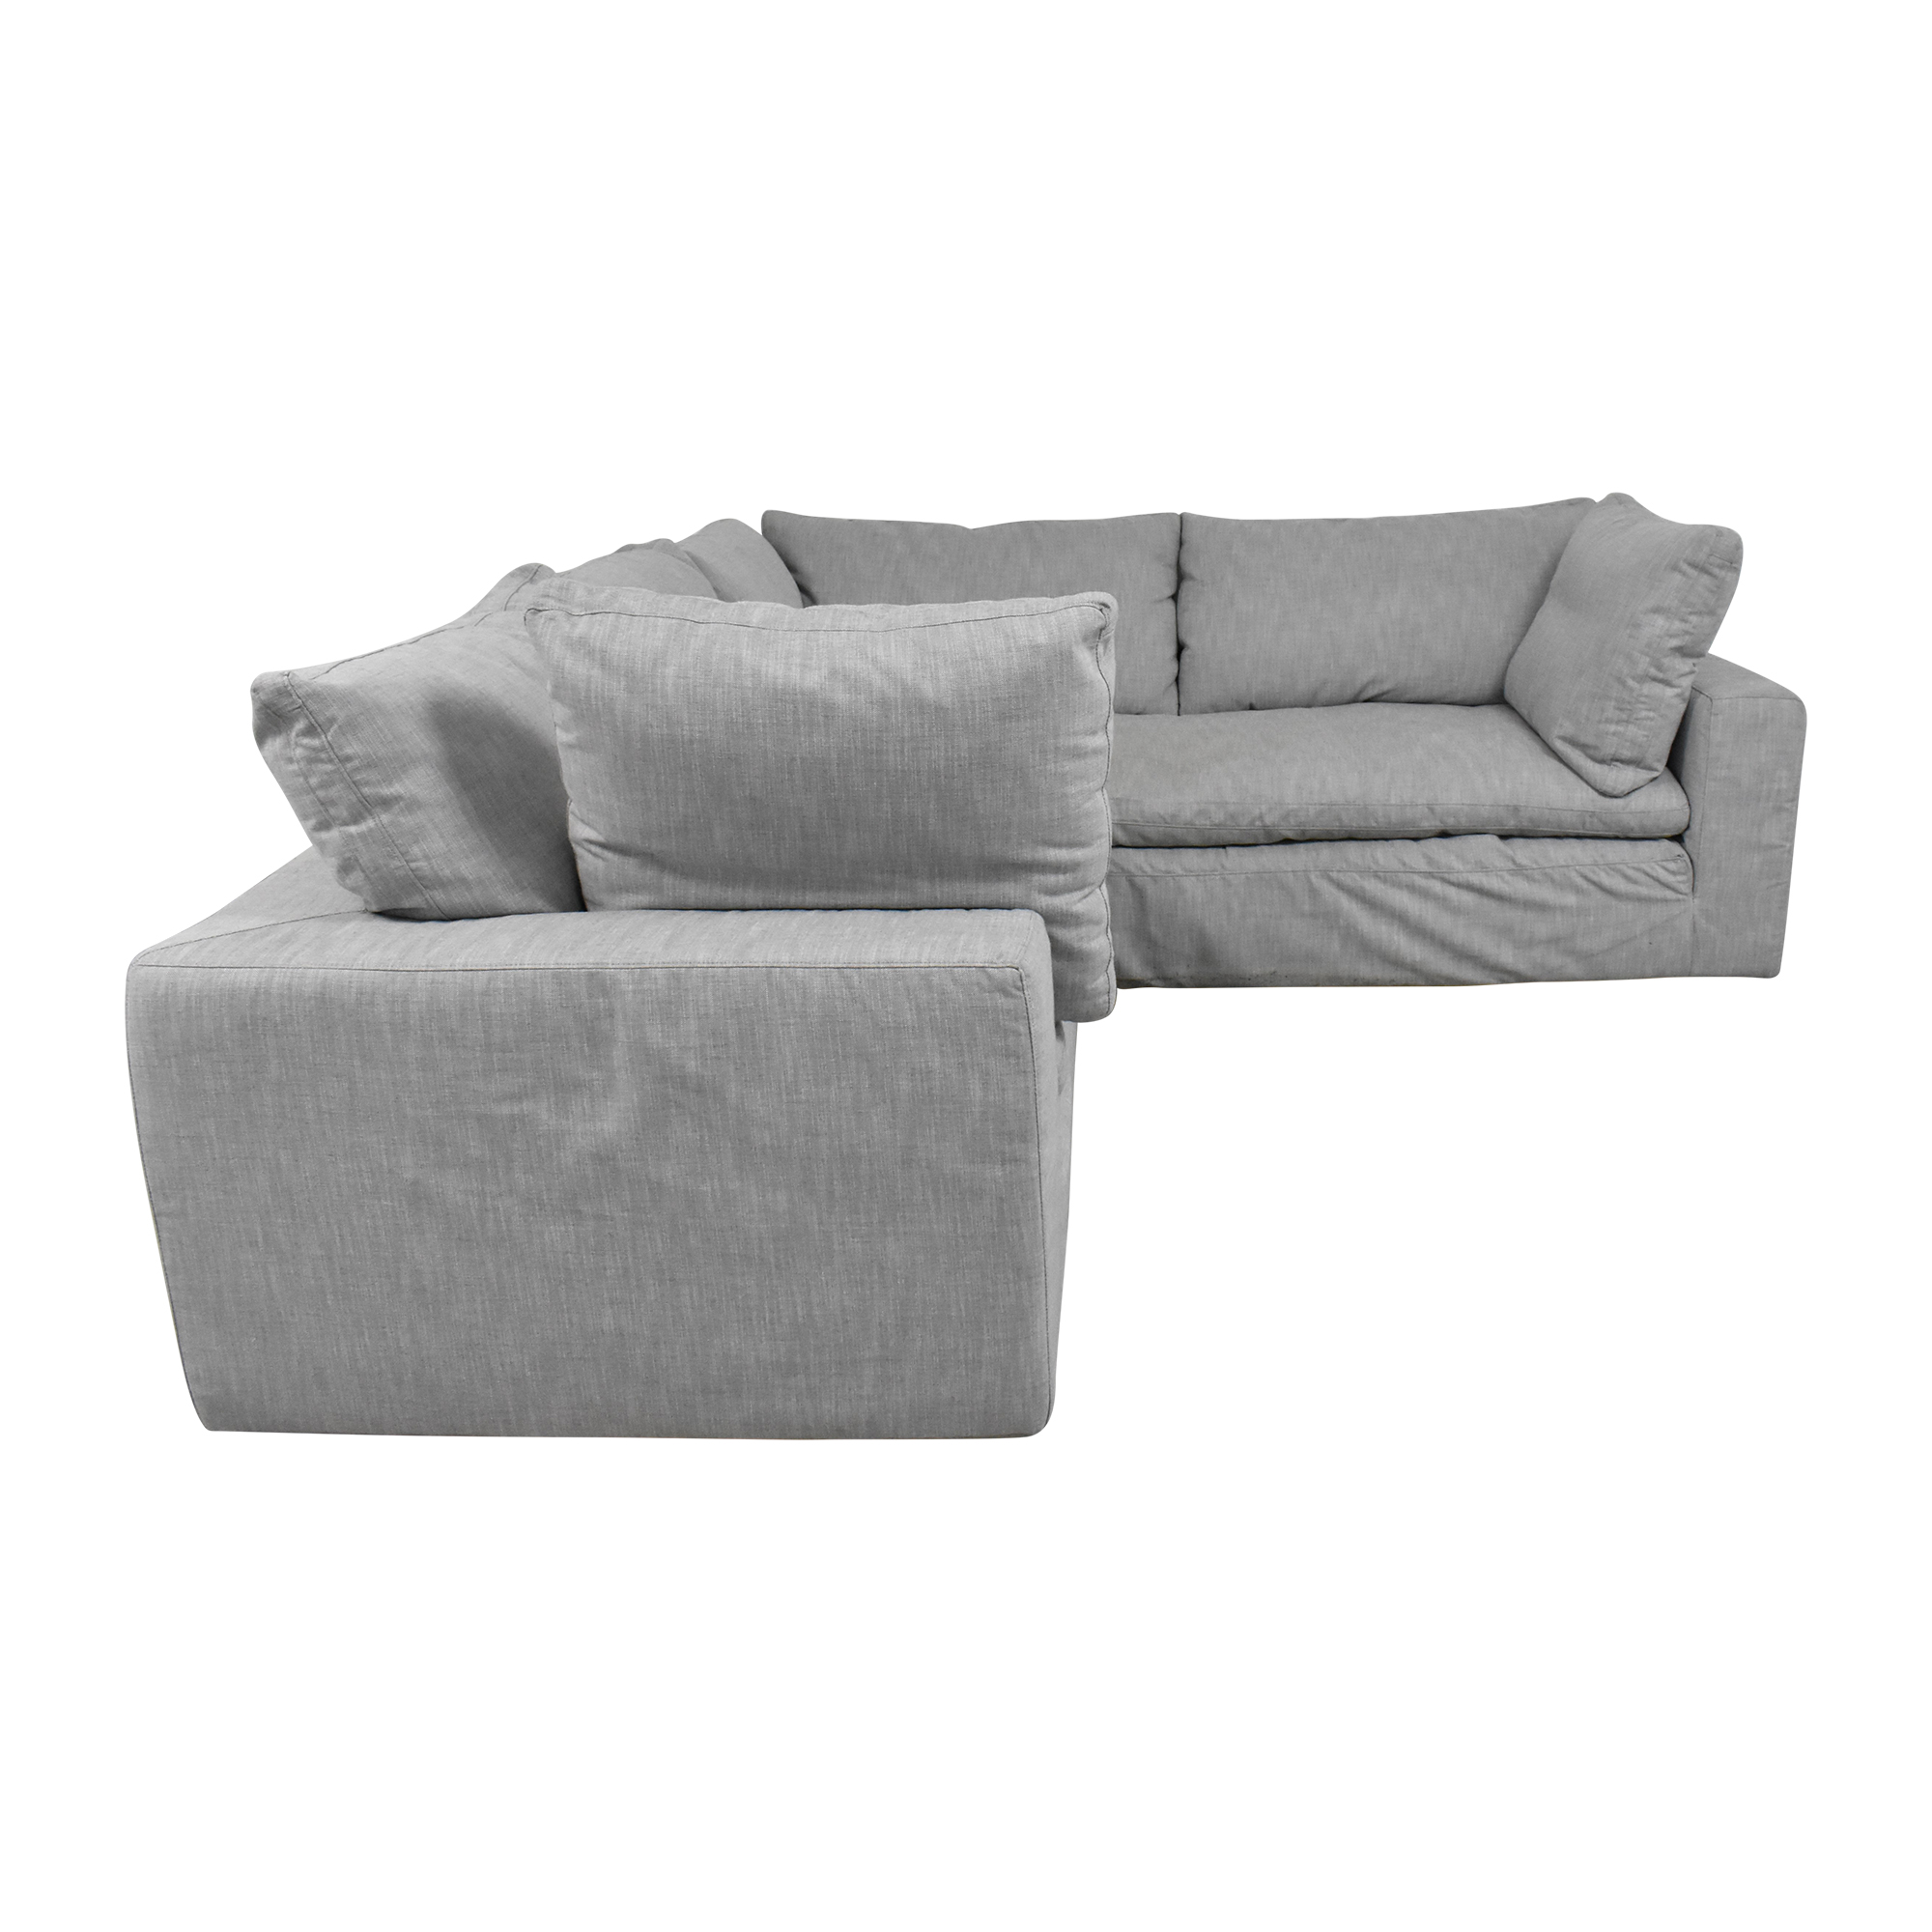 Restoration Hardware Restoration Hardware Cloud Modular Sofa used